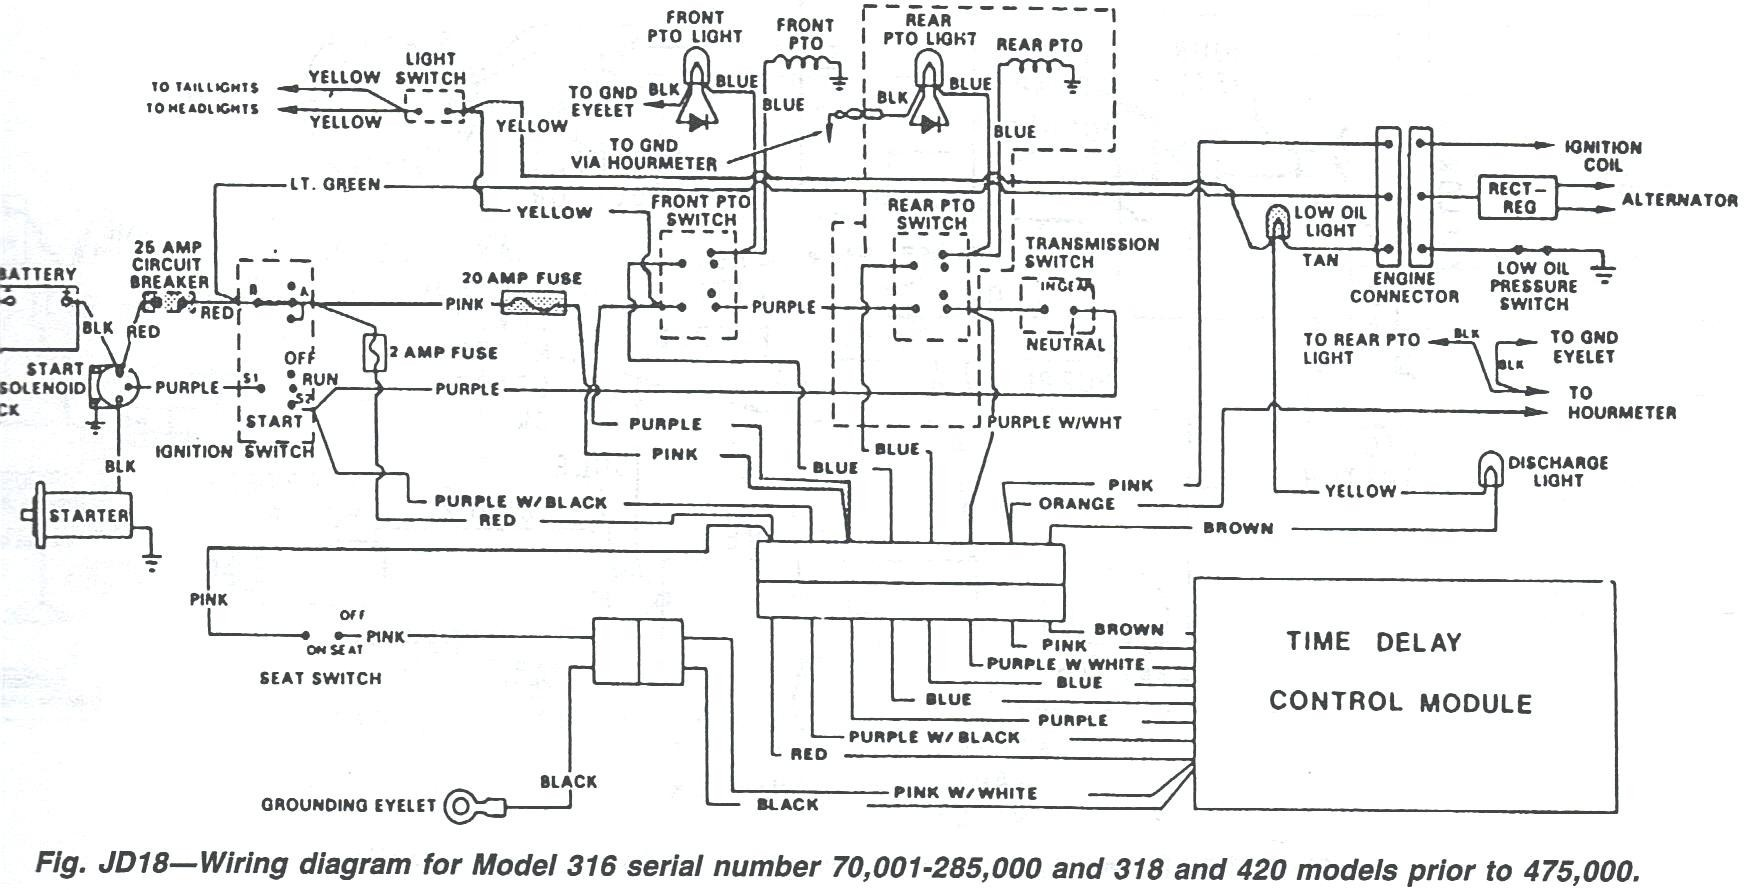 John Deere 317 Wiring Diagram Mockingbird 285 Ignition Just Schematic Rh Lailamaed Co Uk Tractor 318